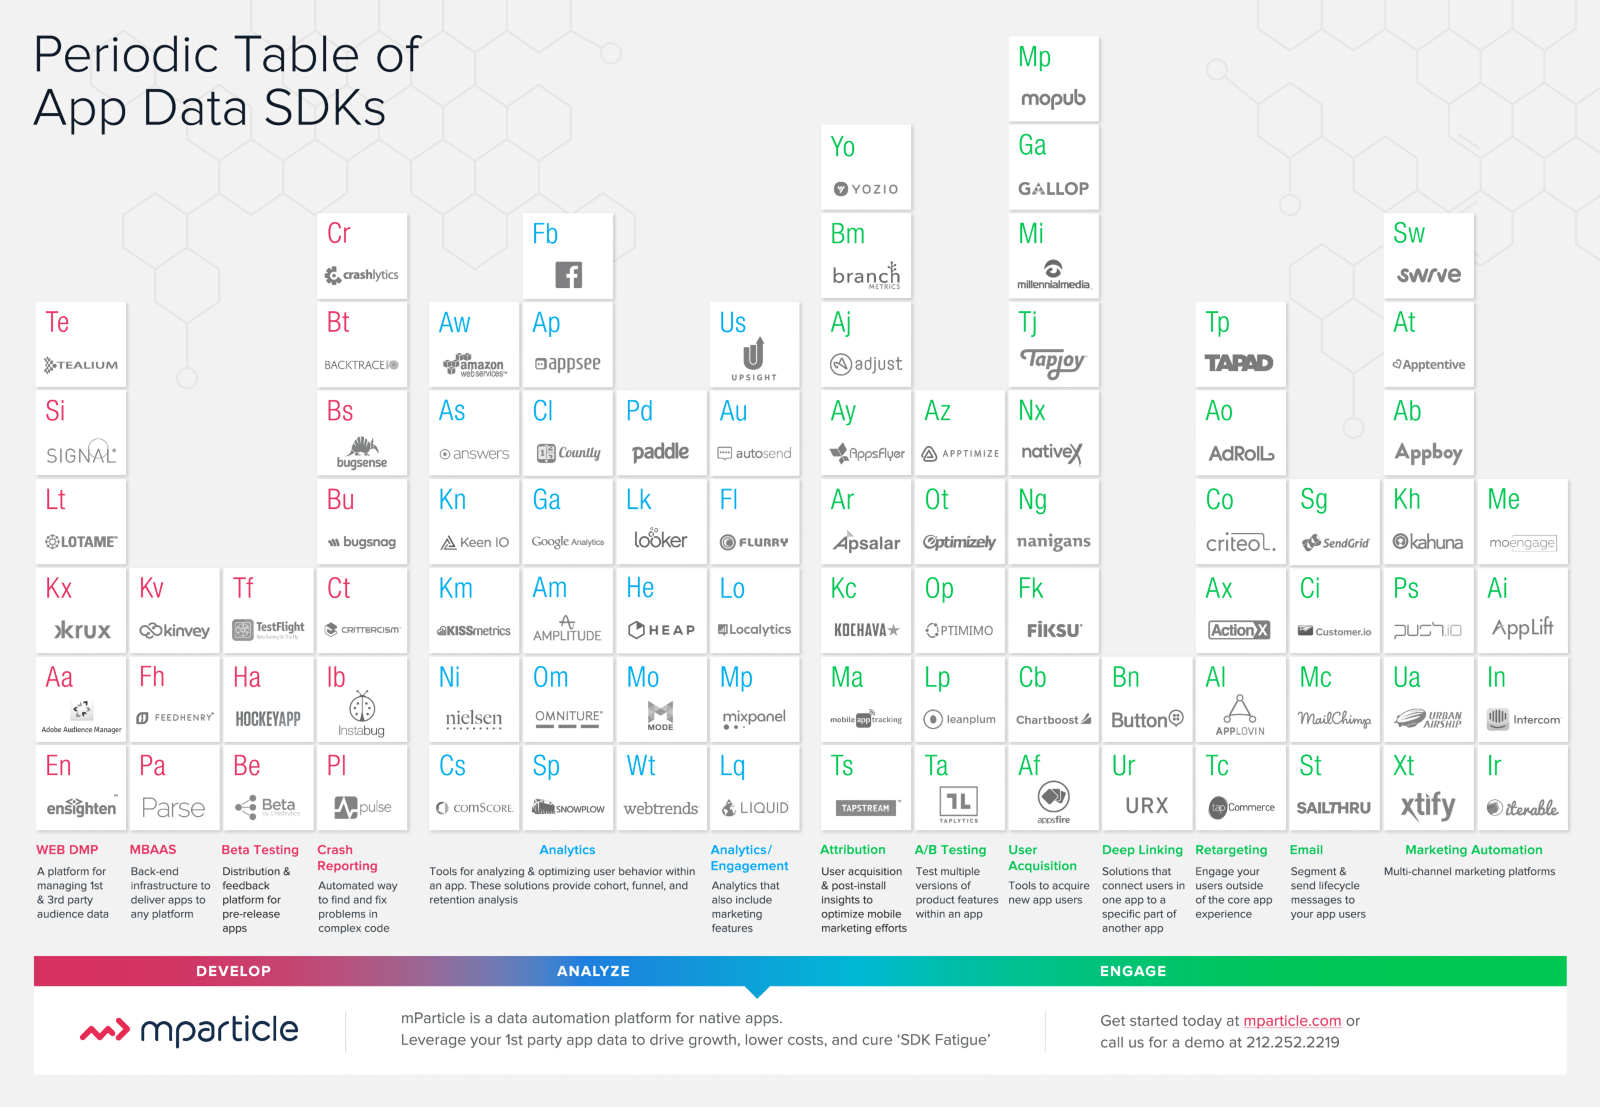 Updated Periodic Table Of App Services U2014 Oct 2015 (Infographic)